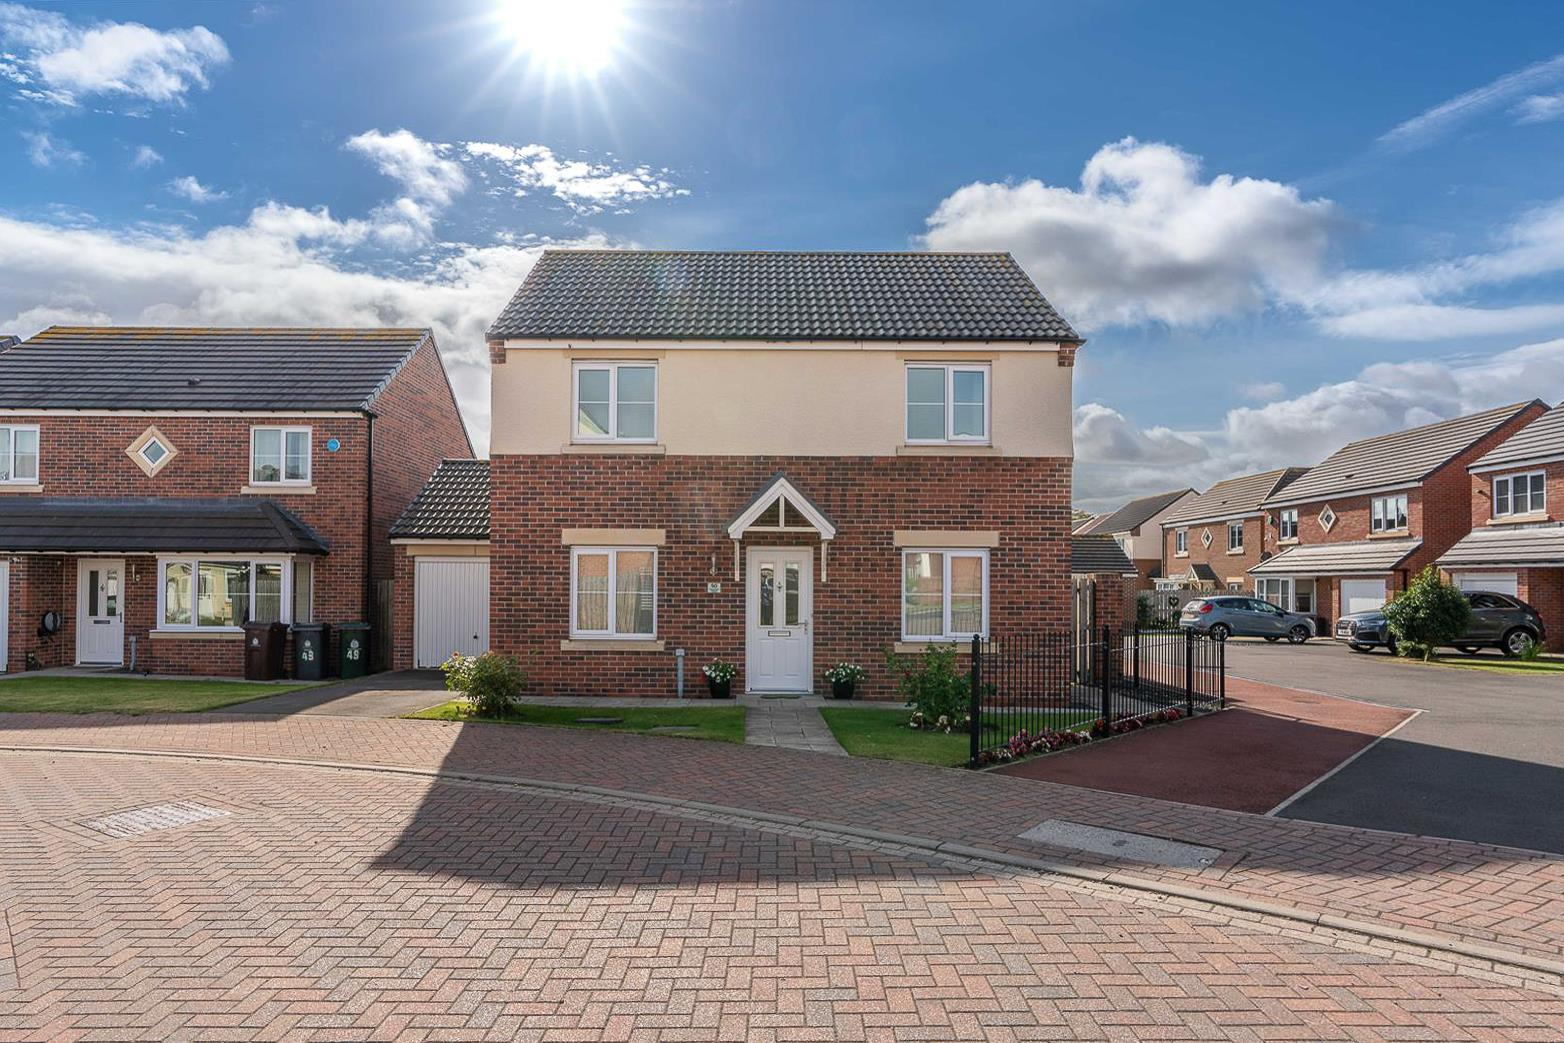 3 bed detached house for sale in Dunnock Place, Wideopen, NE13